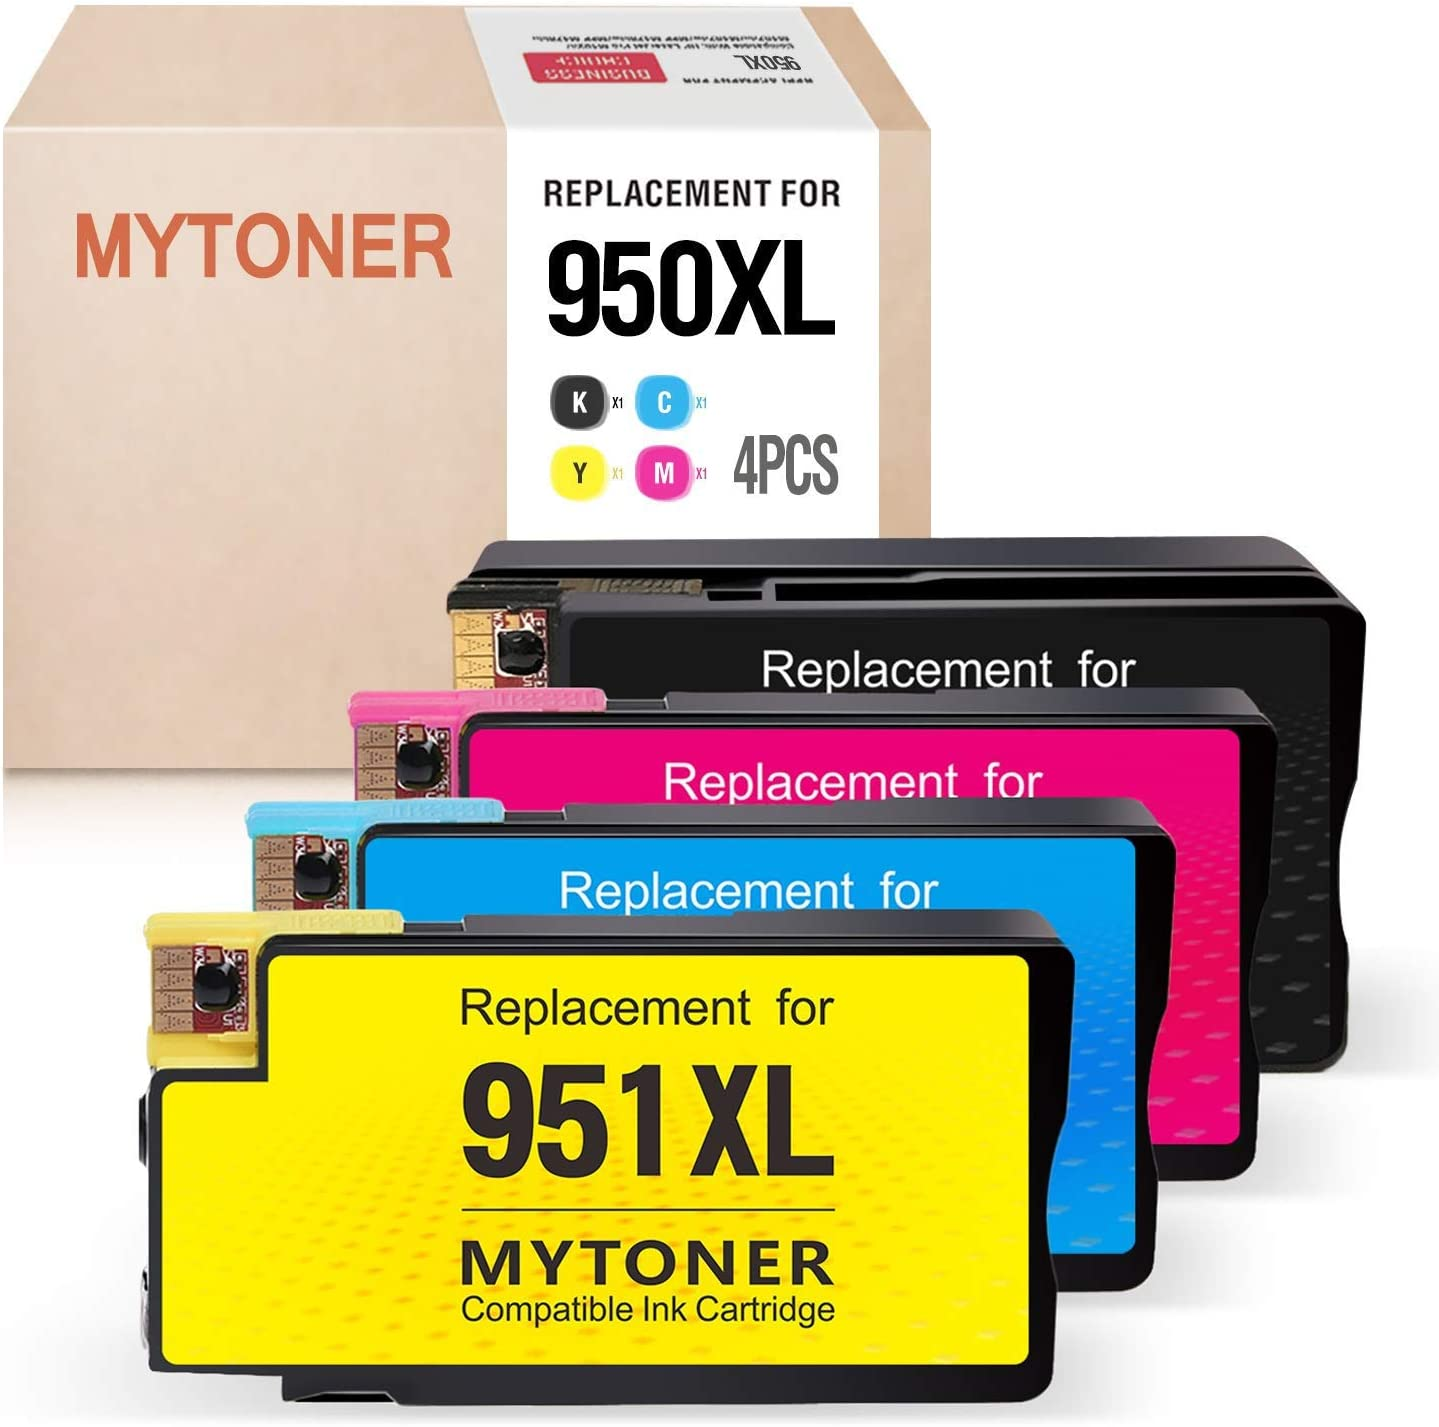 MYTONER Compatible Ink Cartridge Replacement for HP 950XL 951XL 950 XL 951 XL Ink for Officejet Pro 8100 8600 8610 8615 8620 8625 8630 8640 251dw High Yield (Black Cyan MagentaYellow, 4-Pack)